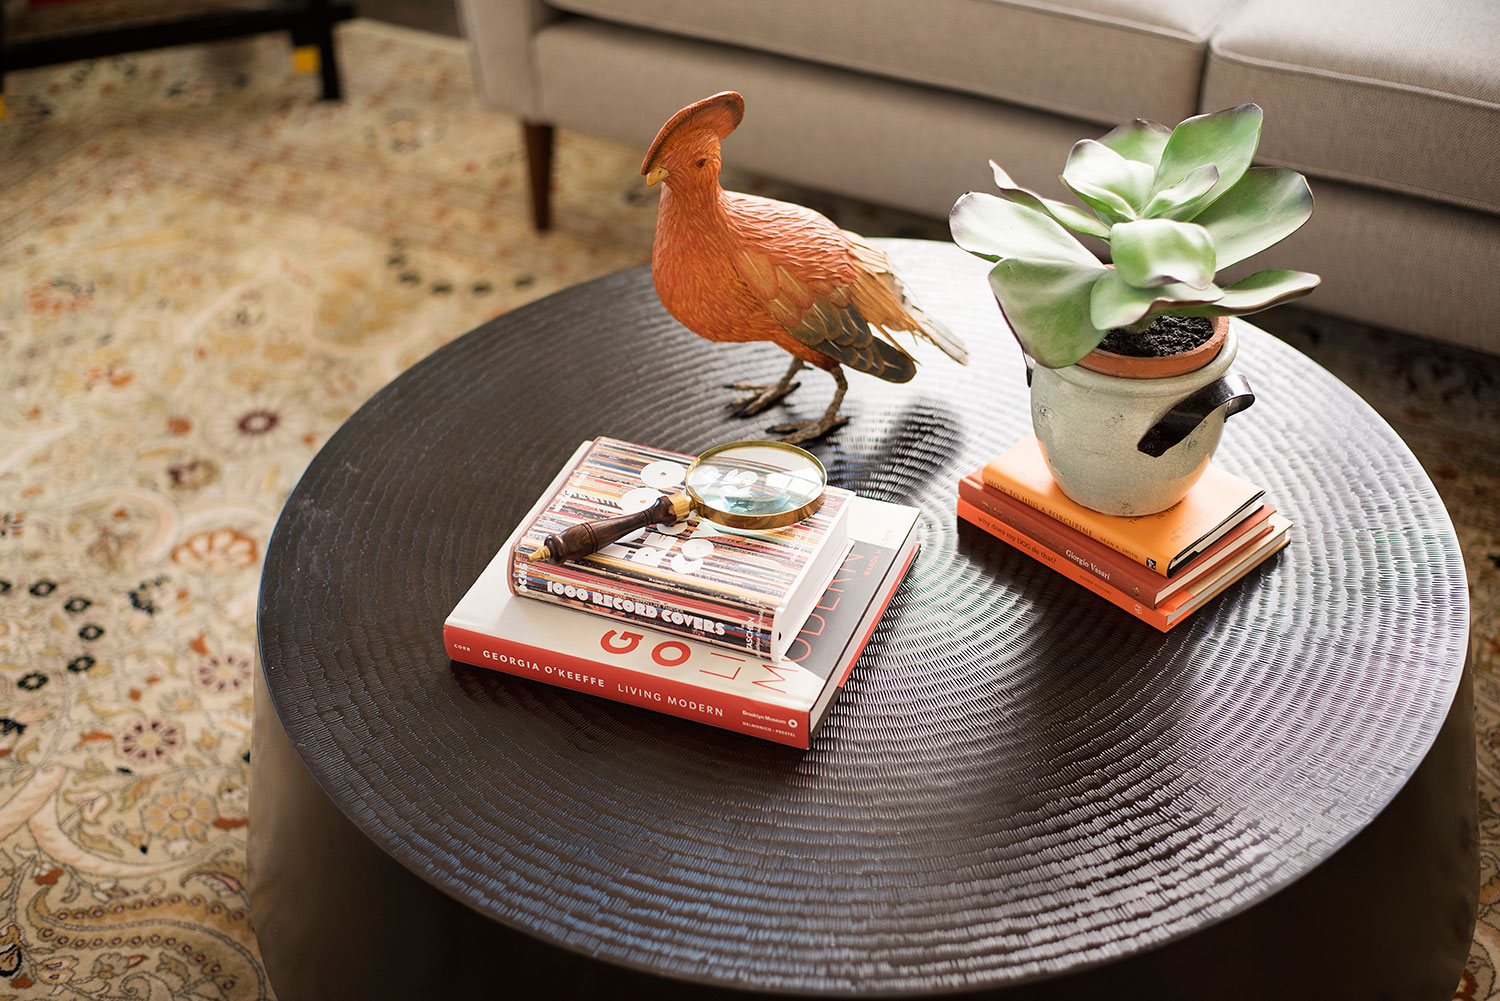 Round metal coffee table with books, potted plants and bird decor